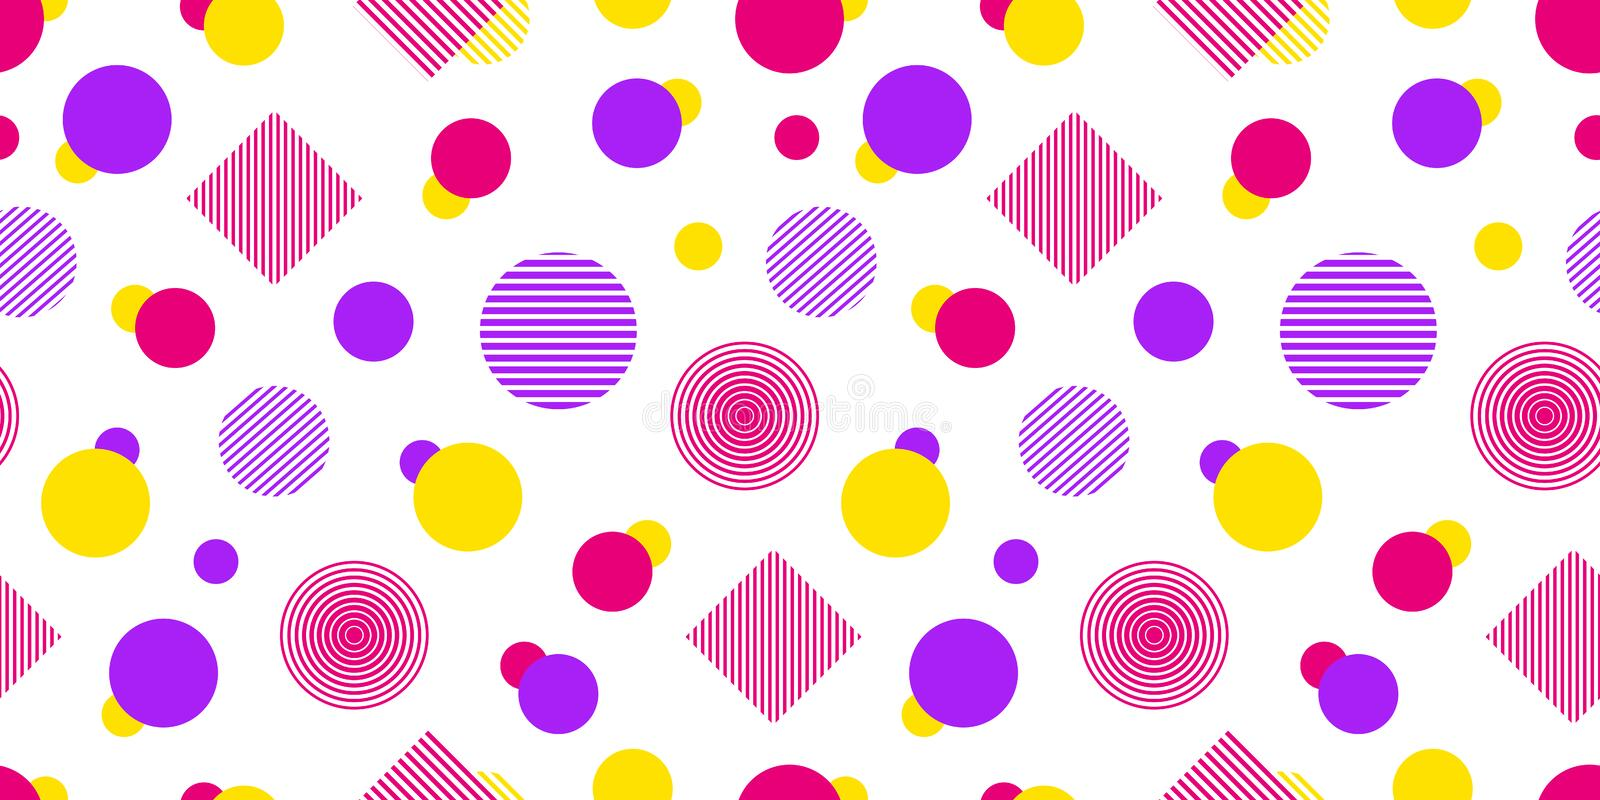 Vector seamless pattern with geometric shapes. Modern repeated texture. Abstract background in bright colors. Colored vector illustration